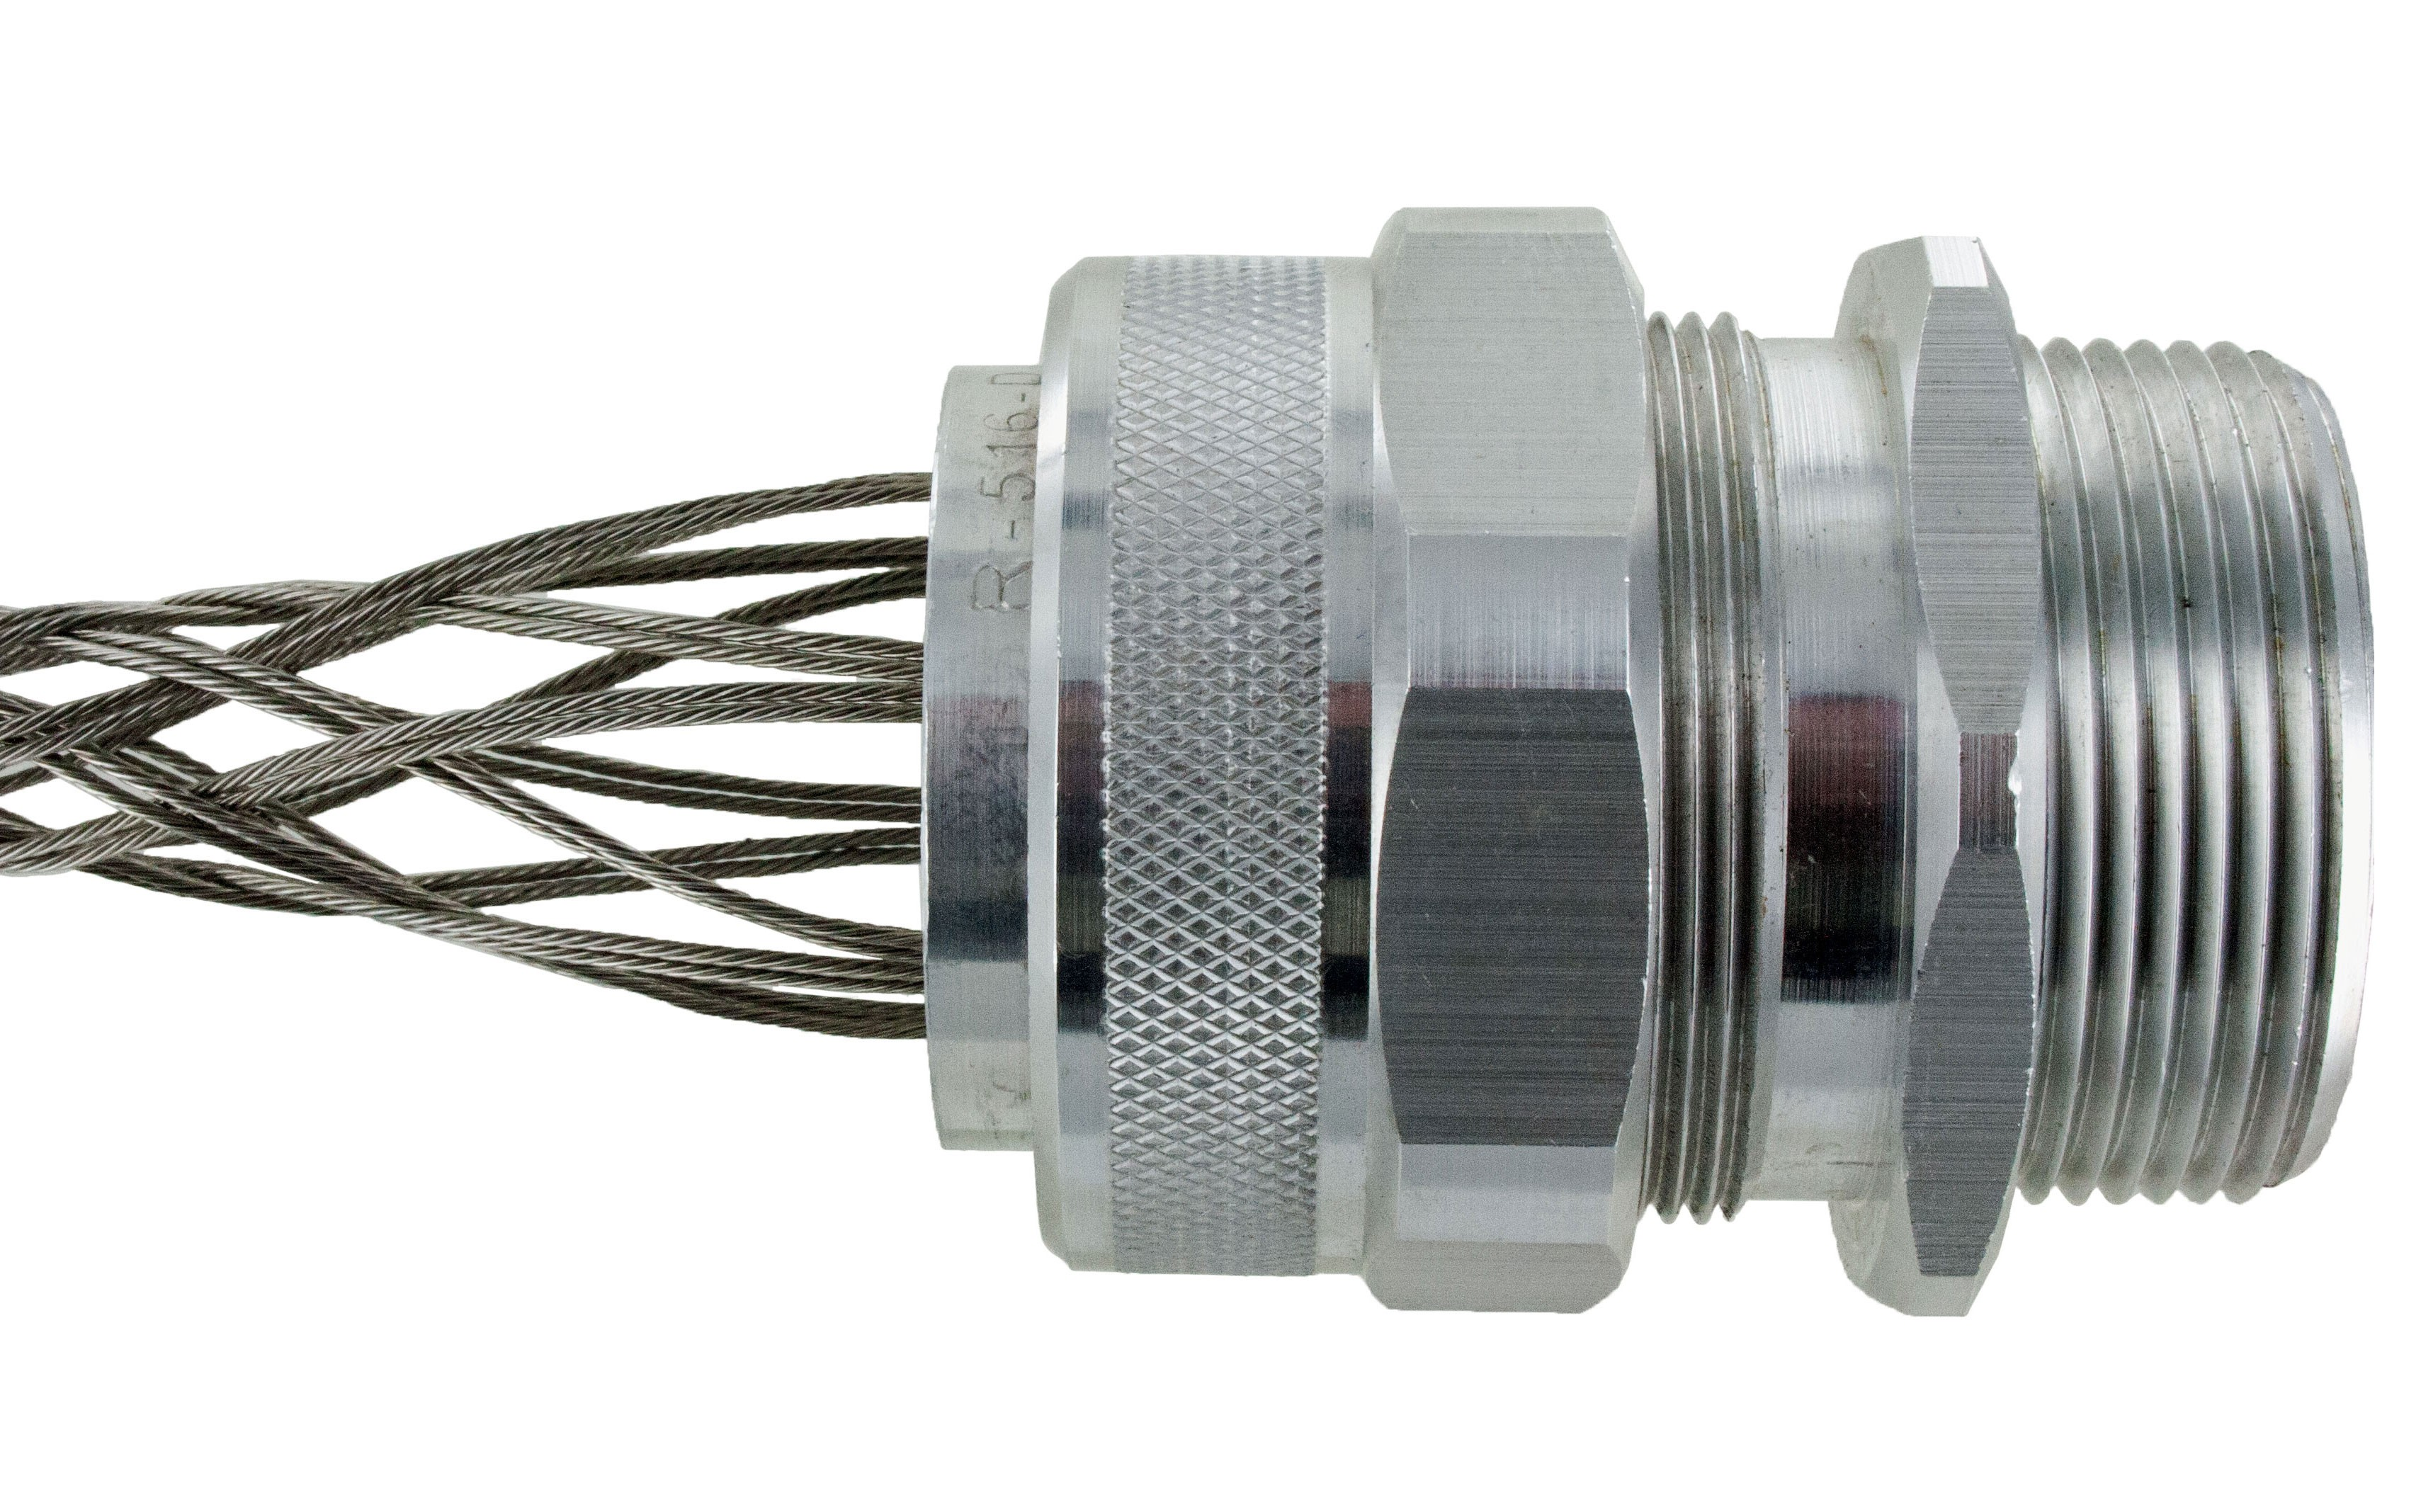 1 2 Npt Cord Grip With Mesh Rsr 5627 E Elecdirect Pollak Lightduty Toggle Switch Onoff 12 Volt 10 Amp 6quot Wire Aluminum 15 16